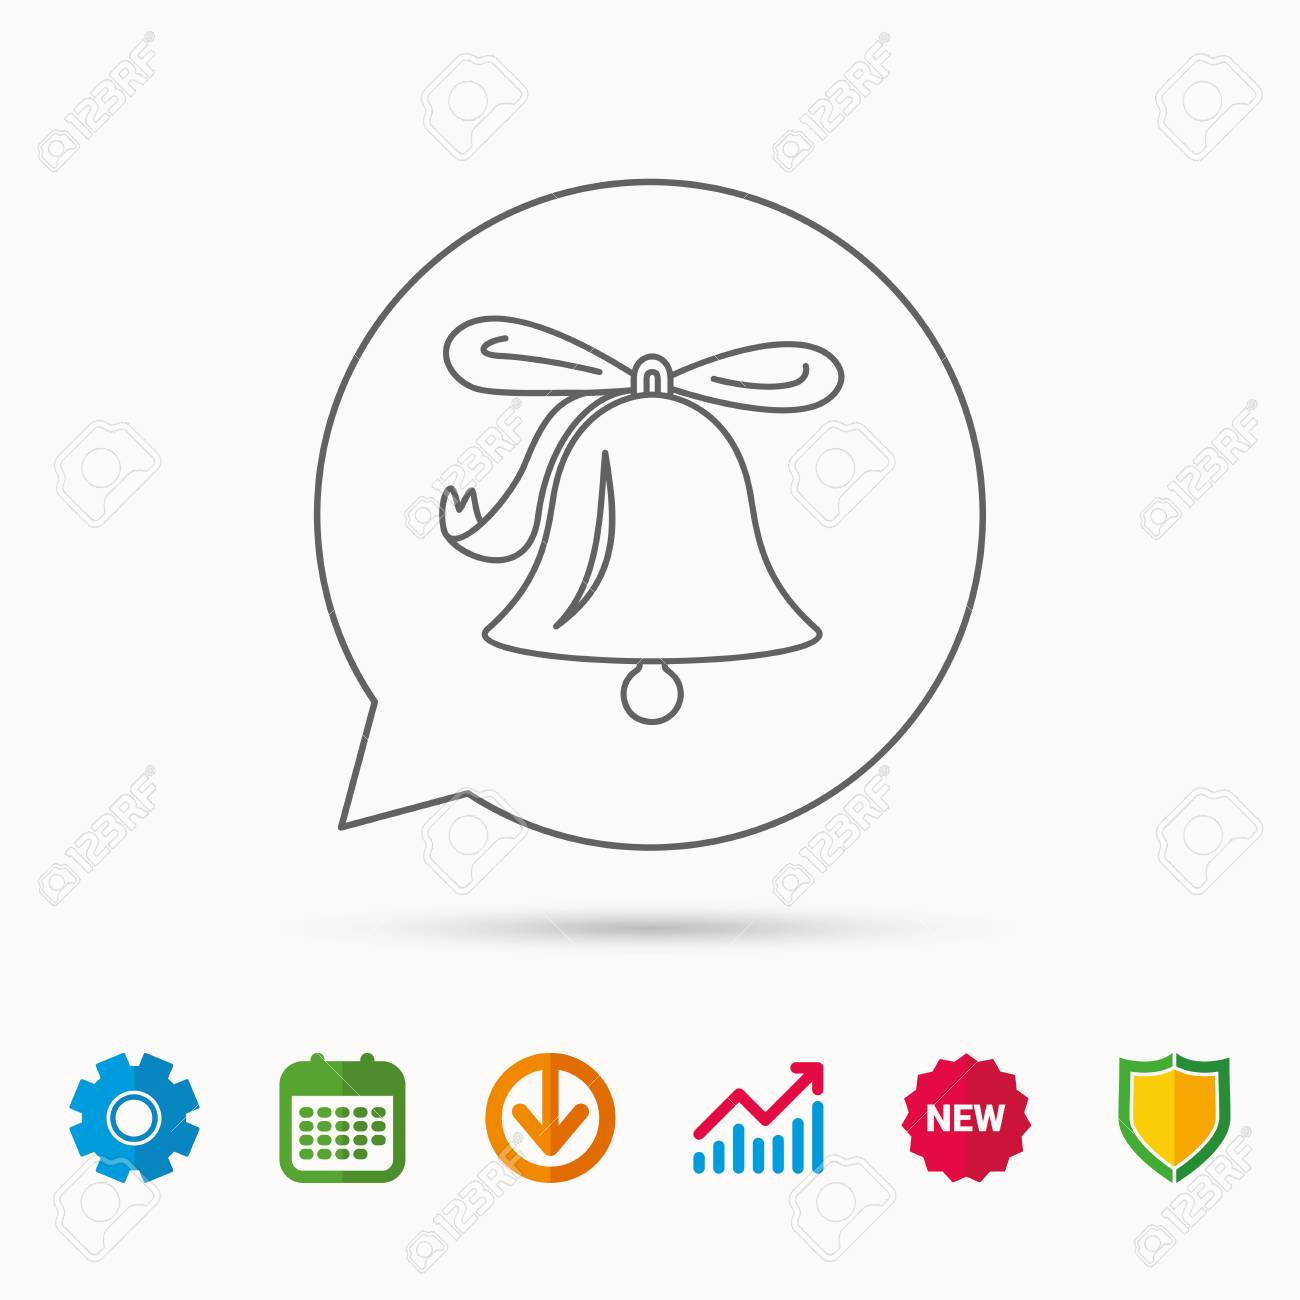 Ringing jingle bell icon  Sound sign  Alarm handbell symbol